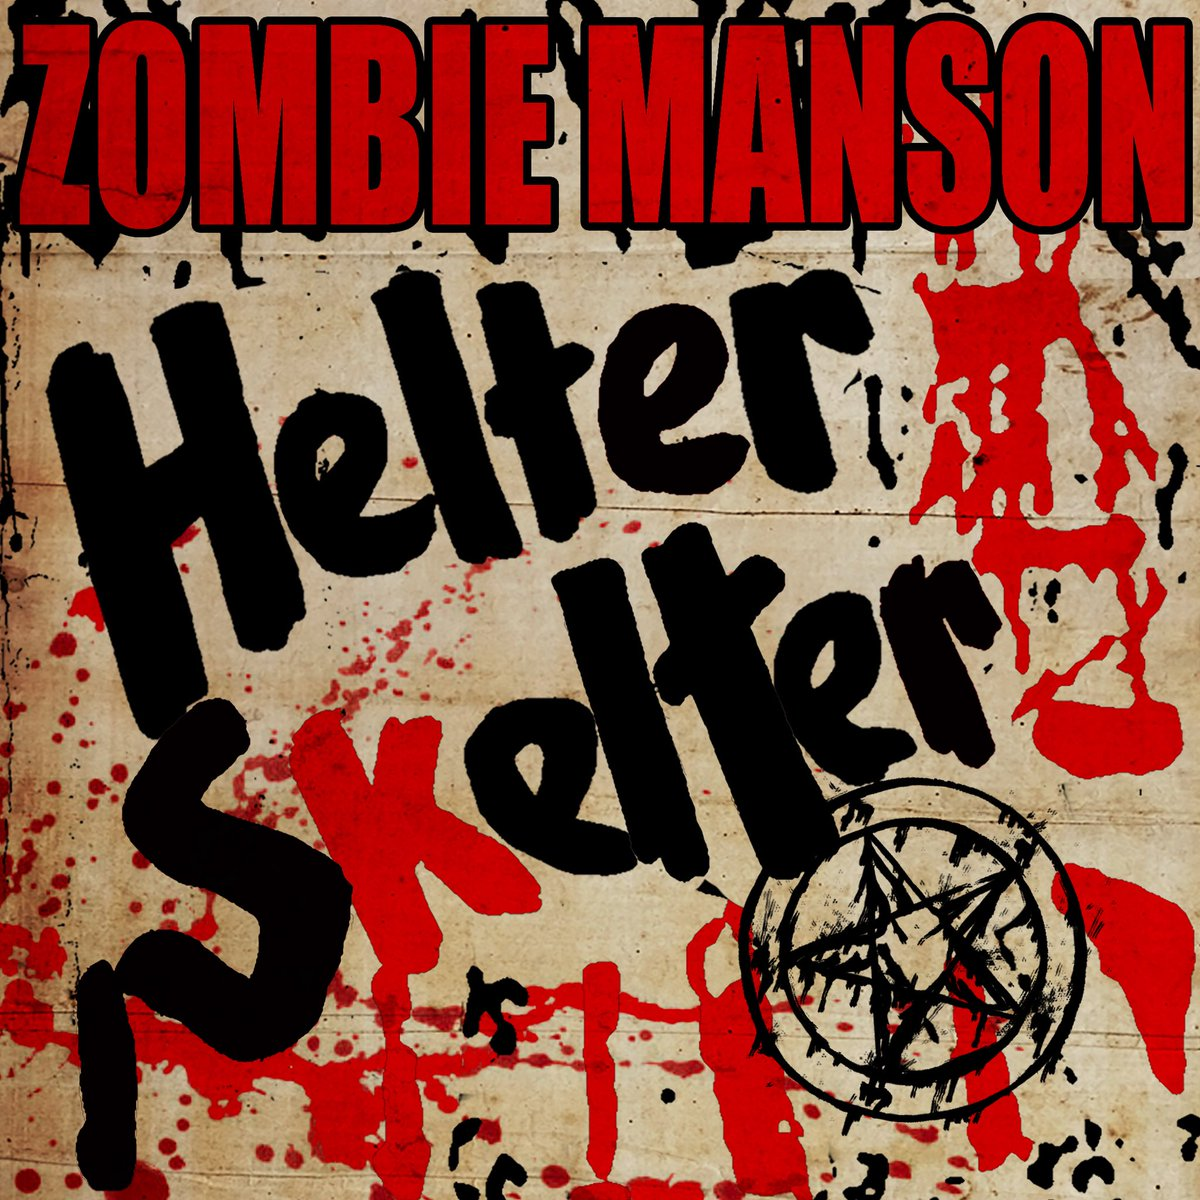 """ZOMBIE+MANSON """"HELTER SKELTER""""  Listen Now: https://t.co/65Ni7Ny84S"""